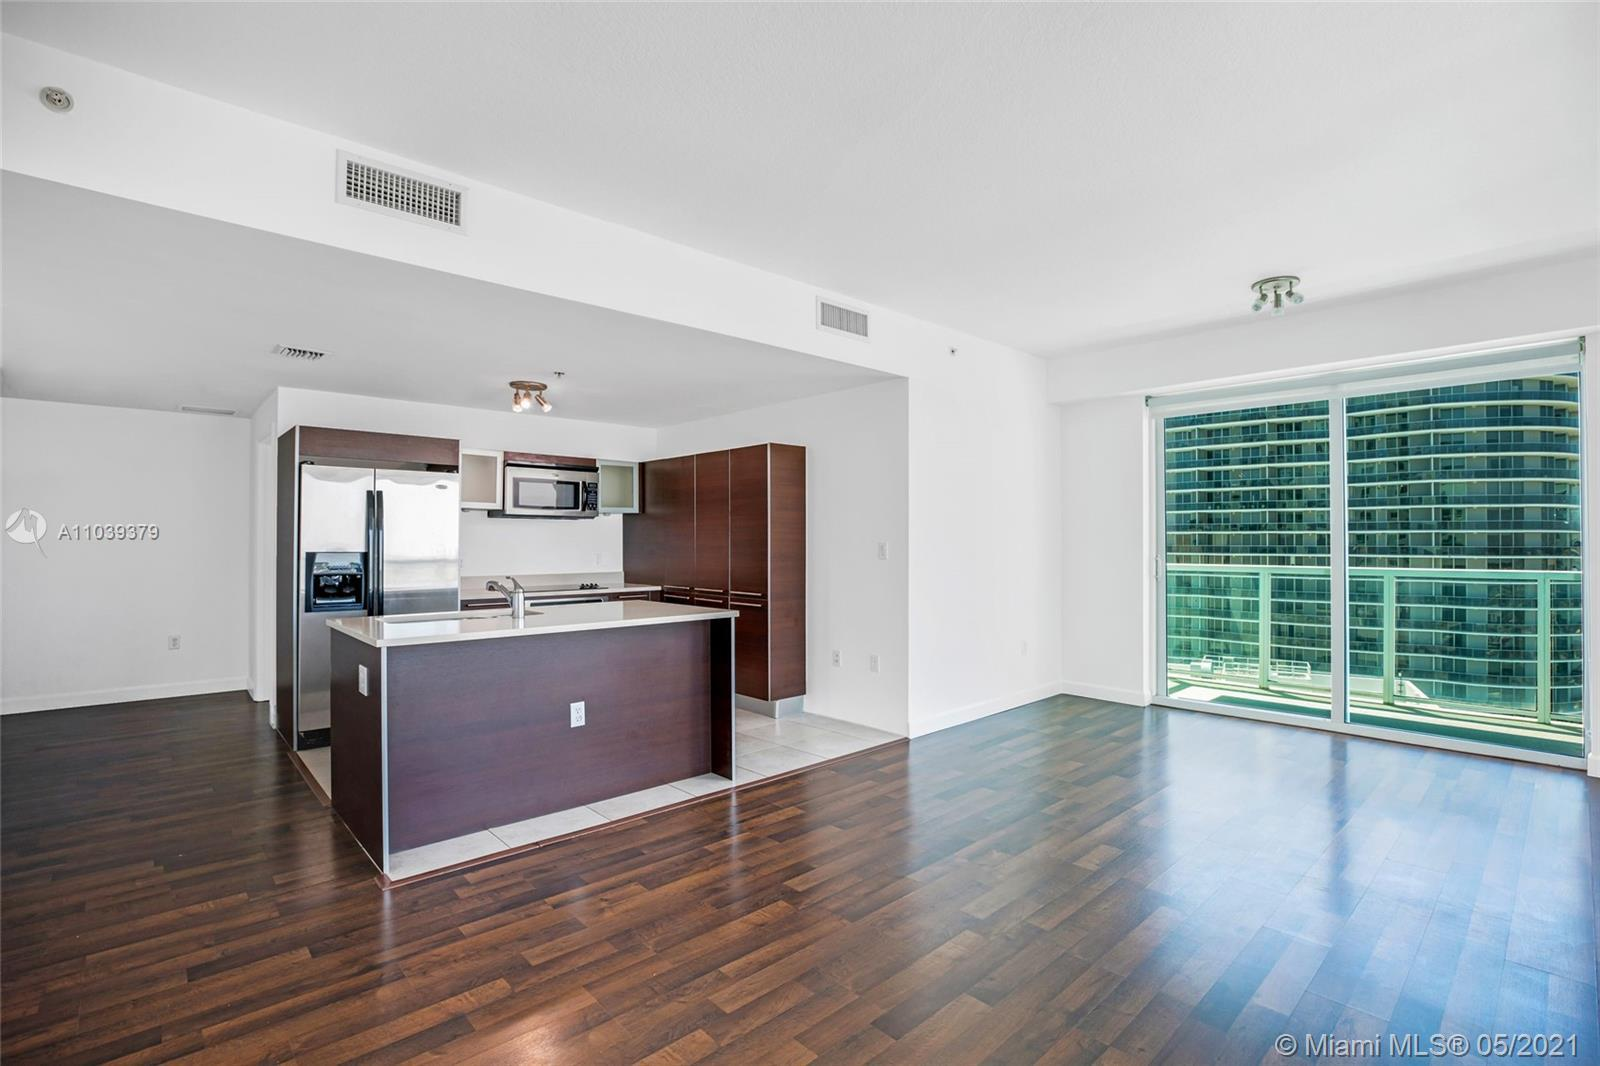 Beautiful 2 bed/2.5 bath condo, located in Edgewater. This modern unit comes fully equipped, ready t